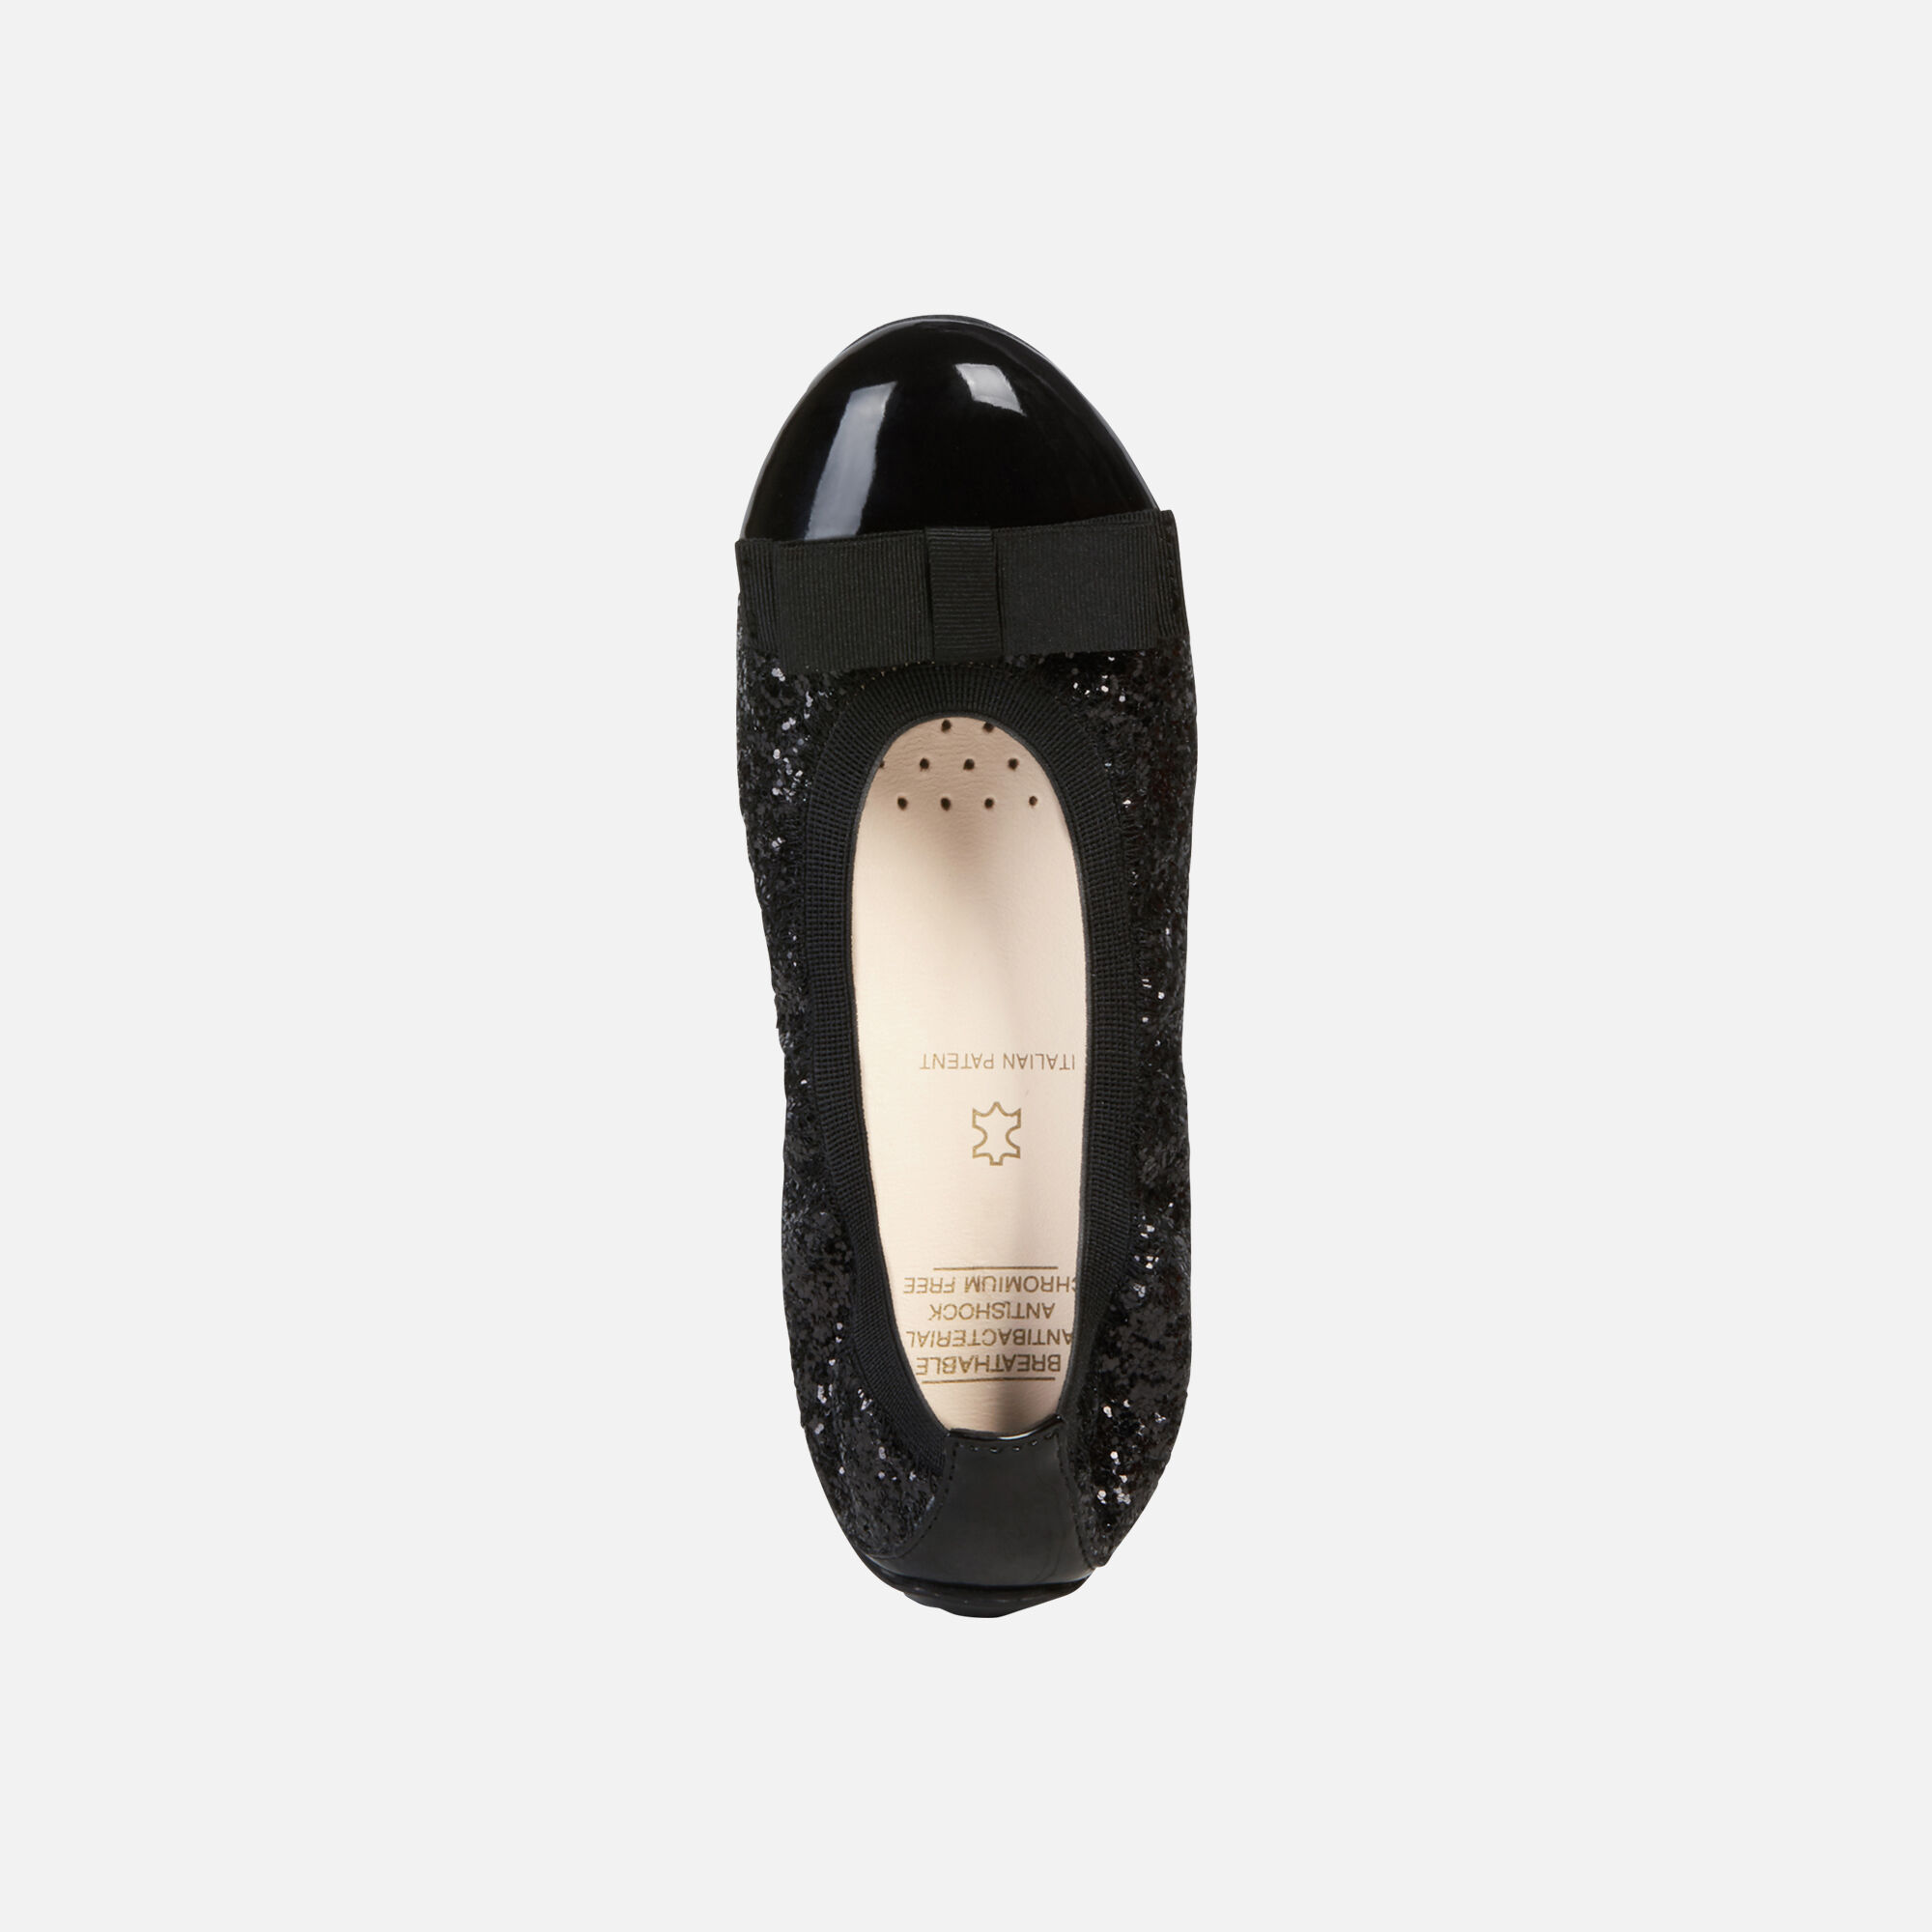 Designed To Fit Your Special Needs Geox Girls' shoes Ballet